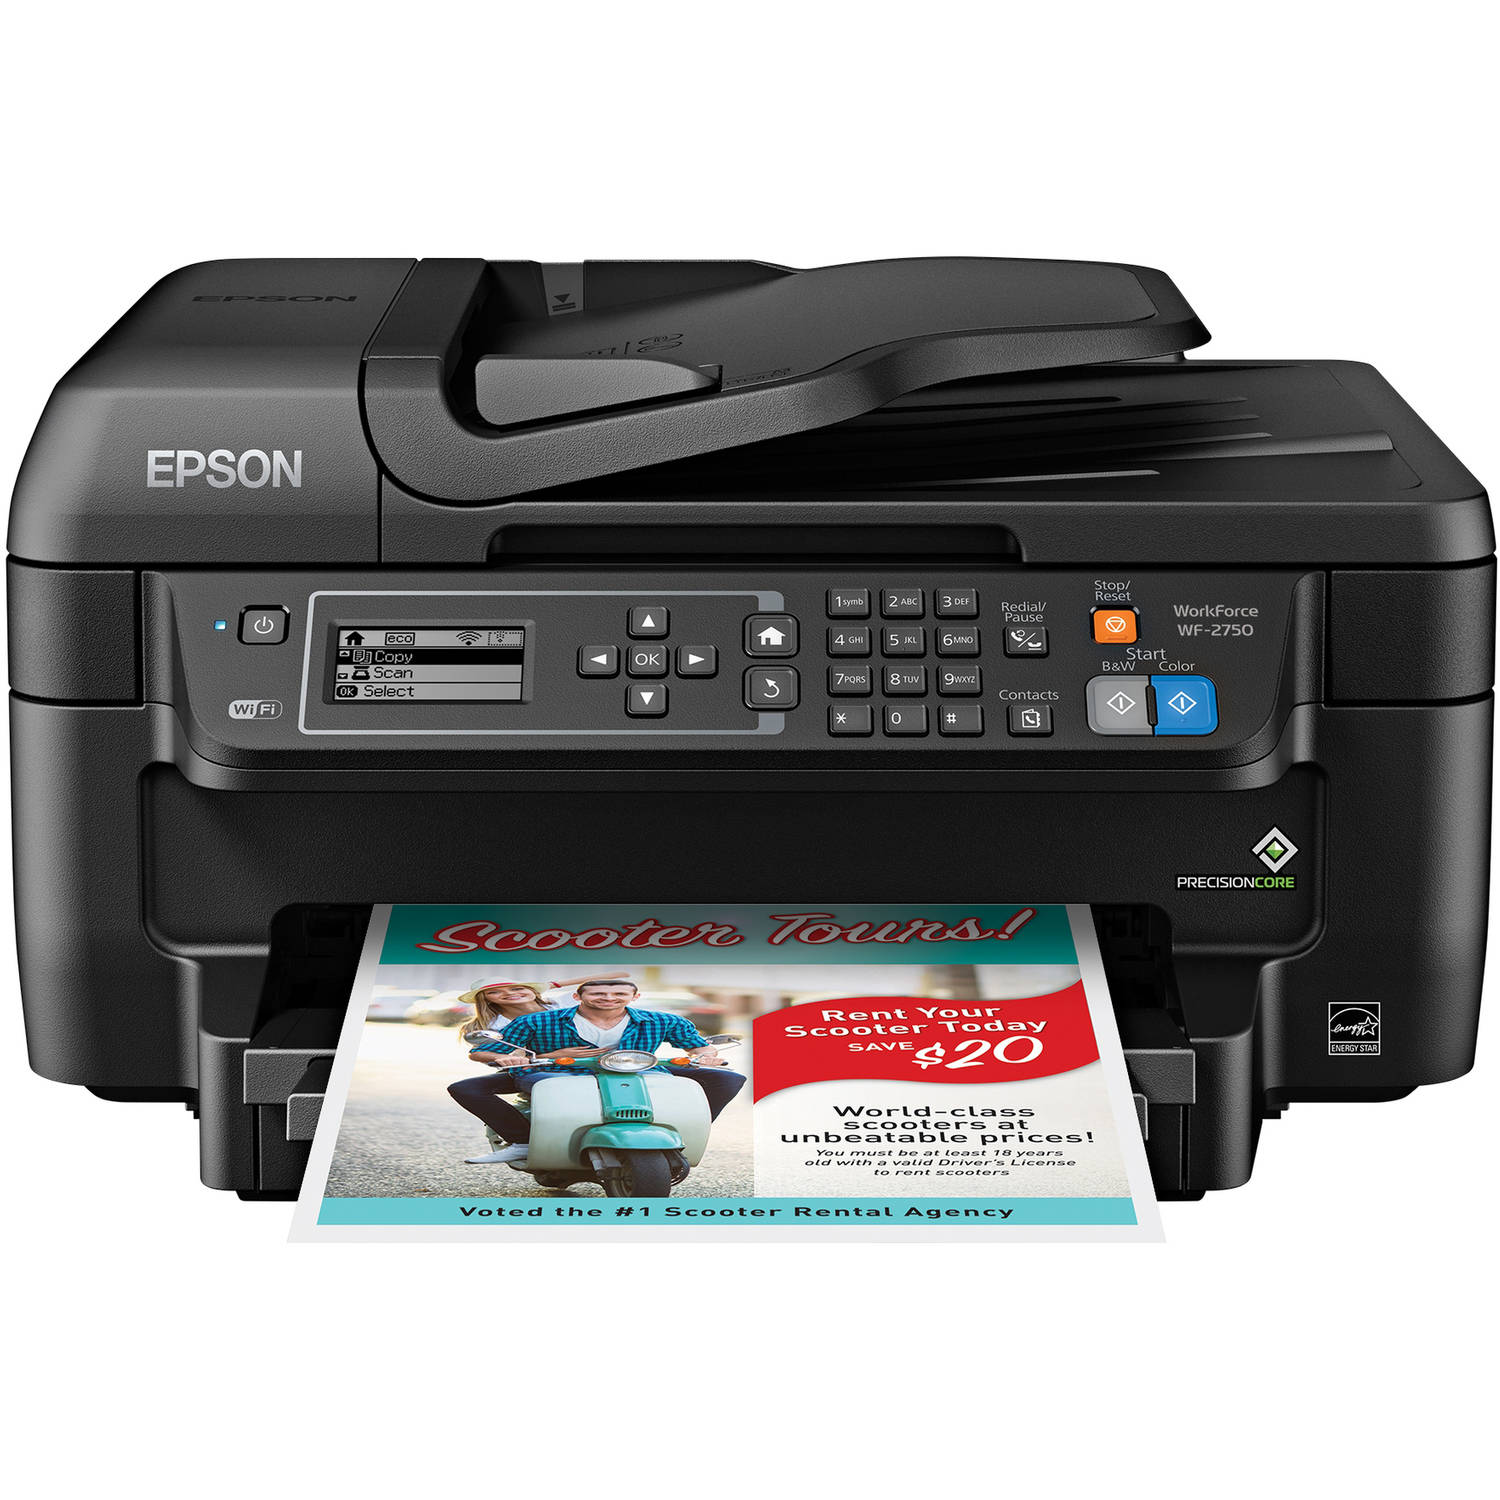 Epson WorkForce WF-2750 All-in-One Wireless Color Printer Copier Scanner Fax Machine by Epson